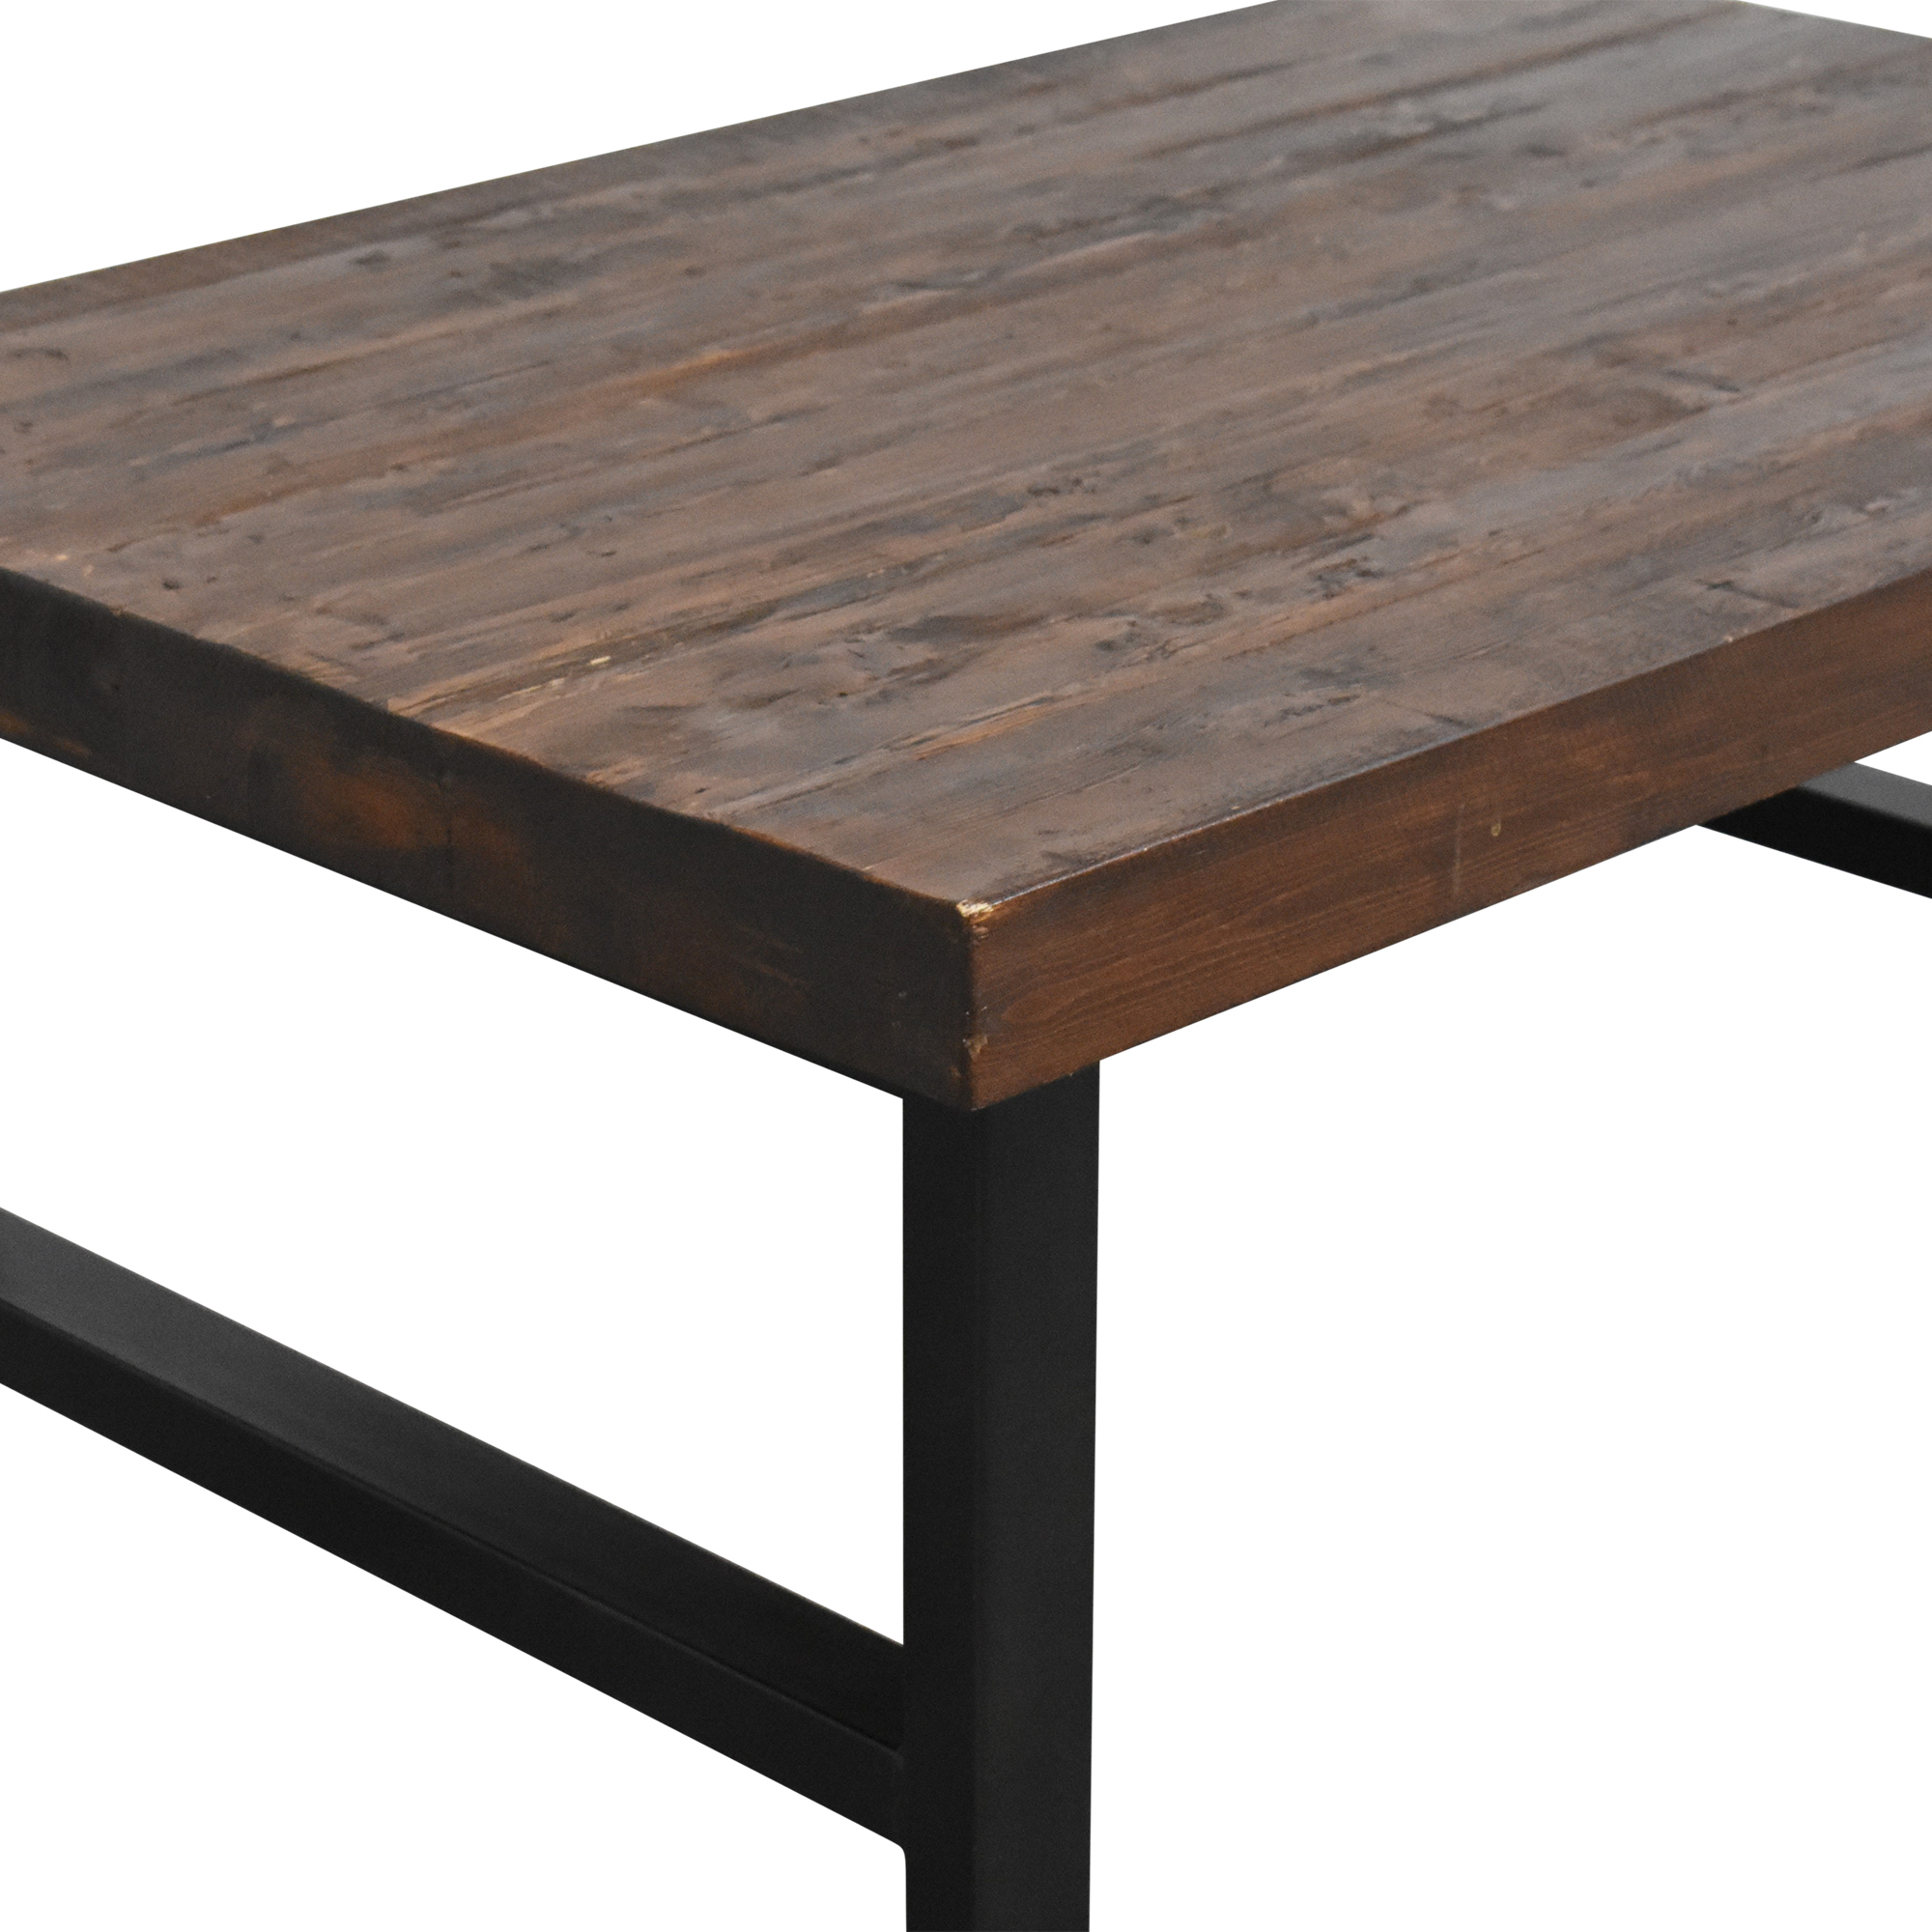 Pottery Barn Pottery Barn Griffin Reclaimed Coffee Table nyc